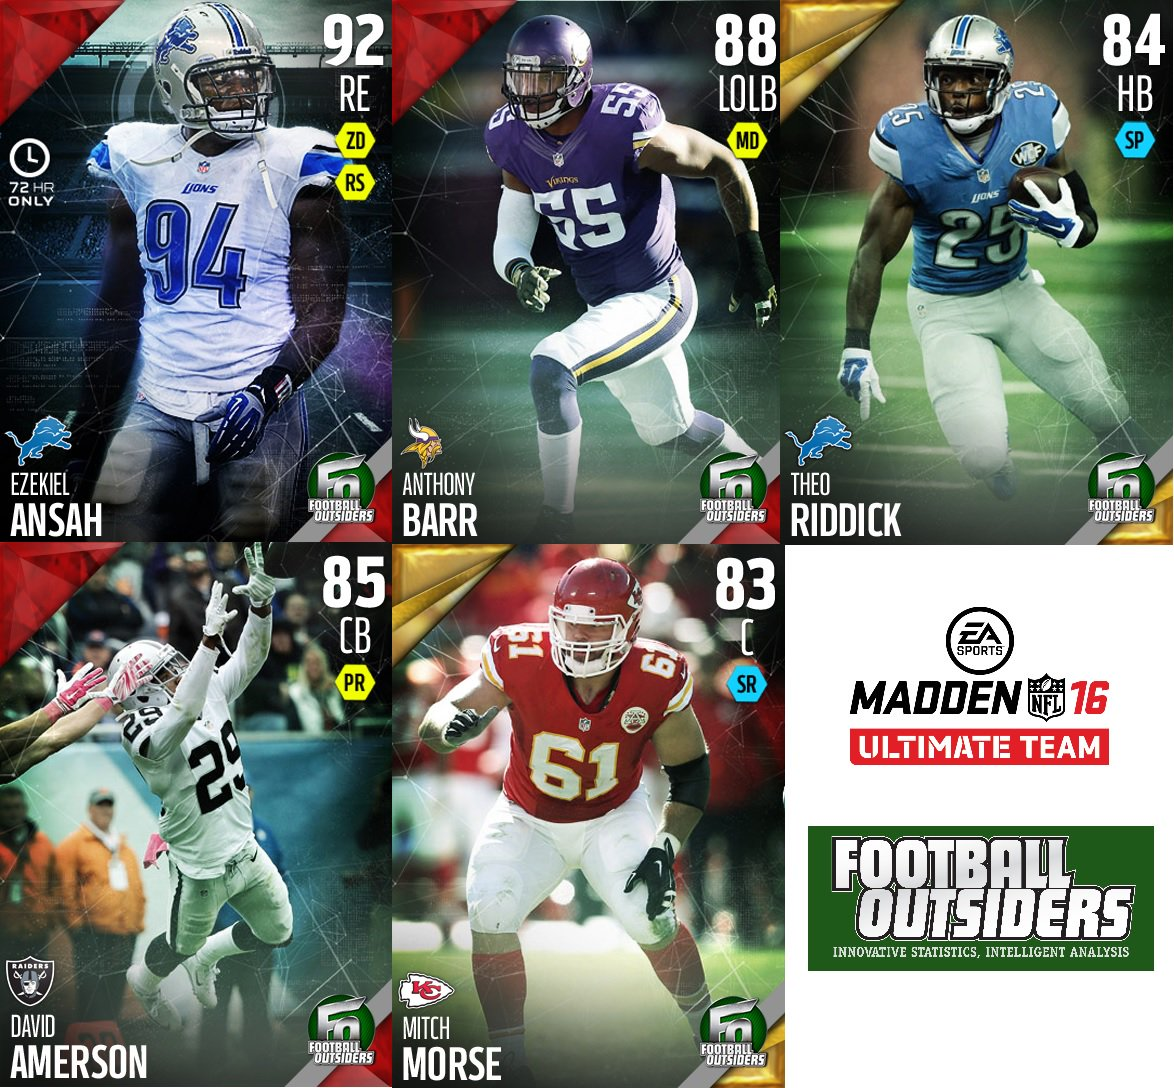 Here are today's Football Outsiders for @EASPORTS_MUT - Yes, Ziggy Ansah will be in packs for 72 hours, not just 24. https://t.co/n2pW4XAeUP